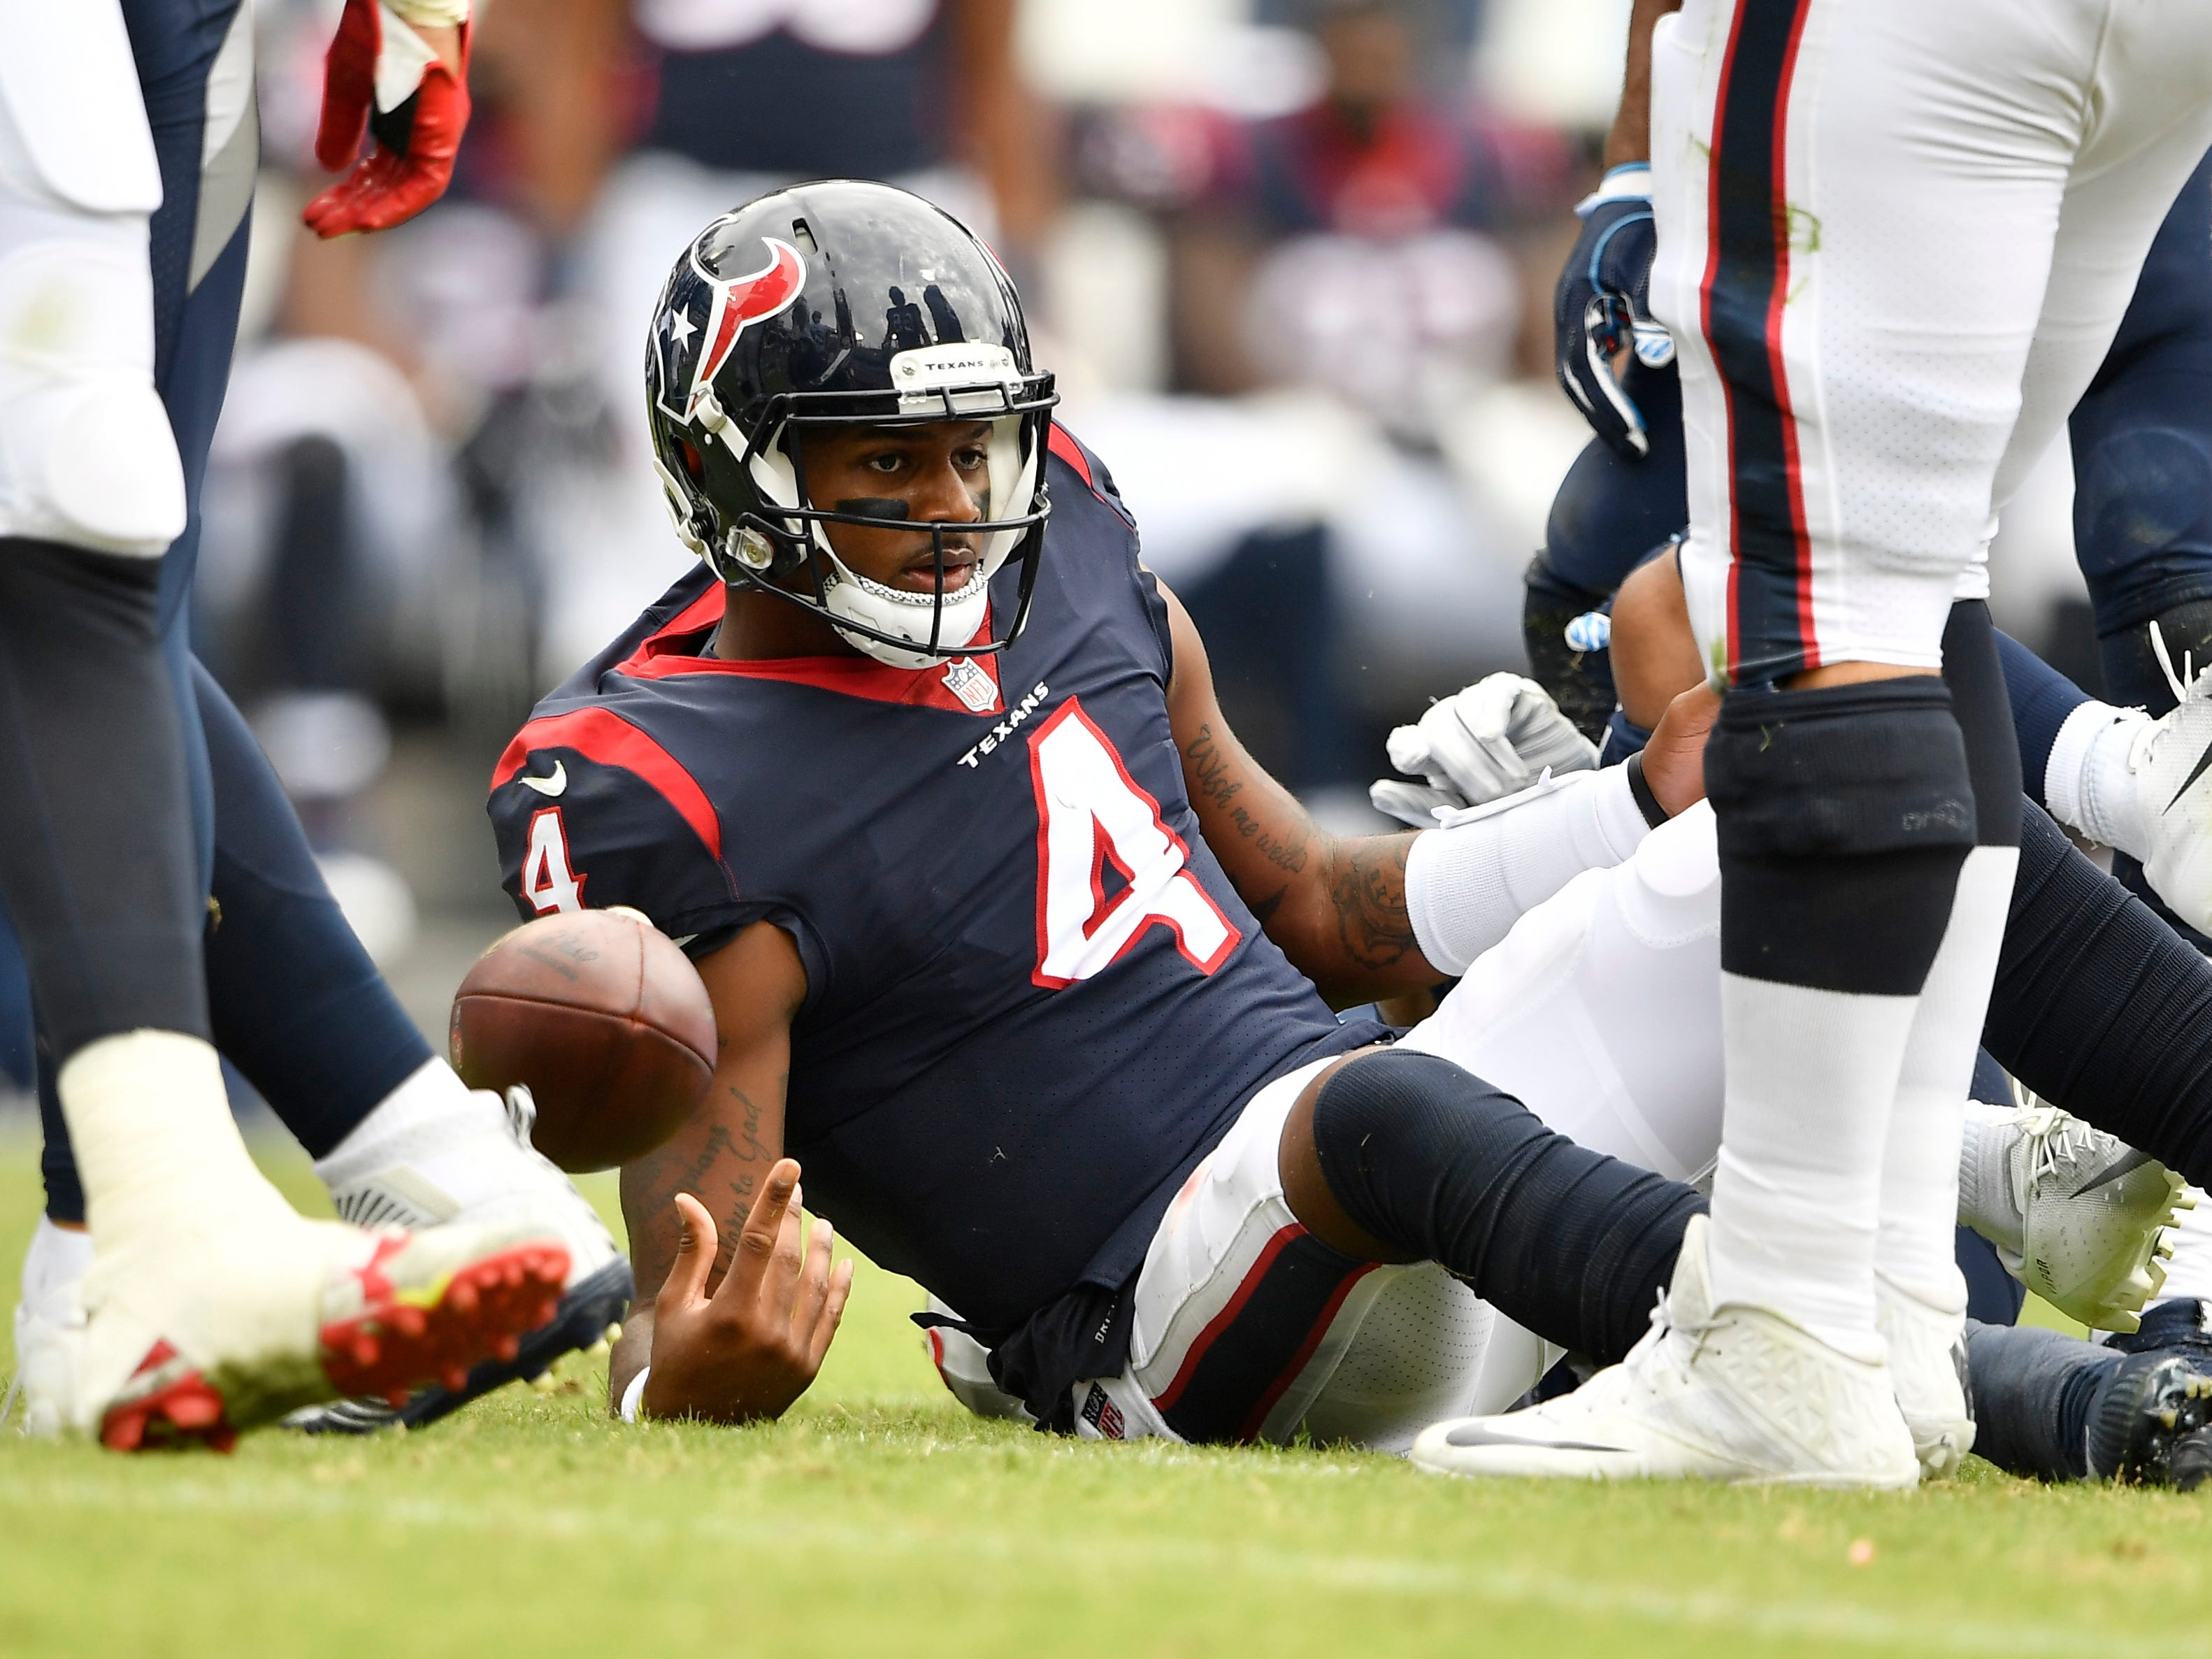 Texans quarterback Deshaun Watson (4) is sacked by Titans linebacker Kamalei Correa (44) in the second half at Nissan Stadium Sunday, Sept. 16, 2018, in Nashville, Tenn.